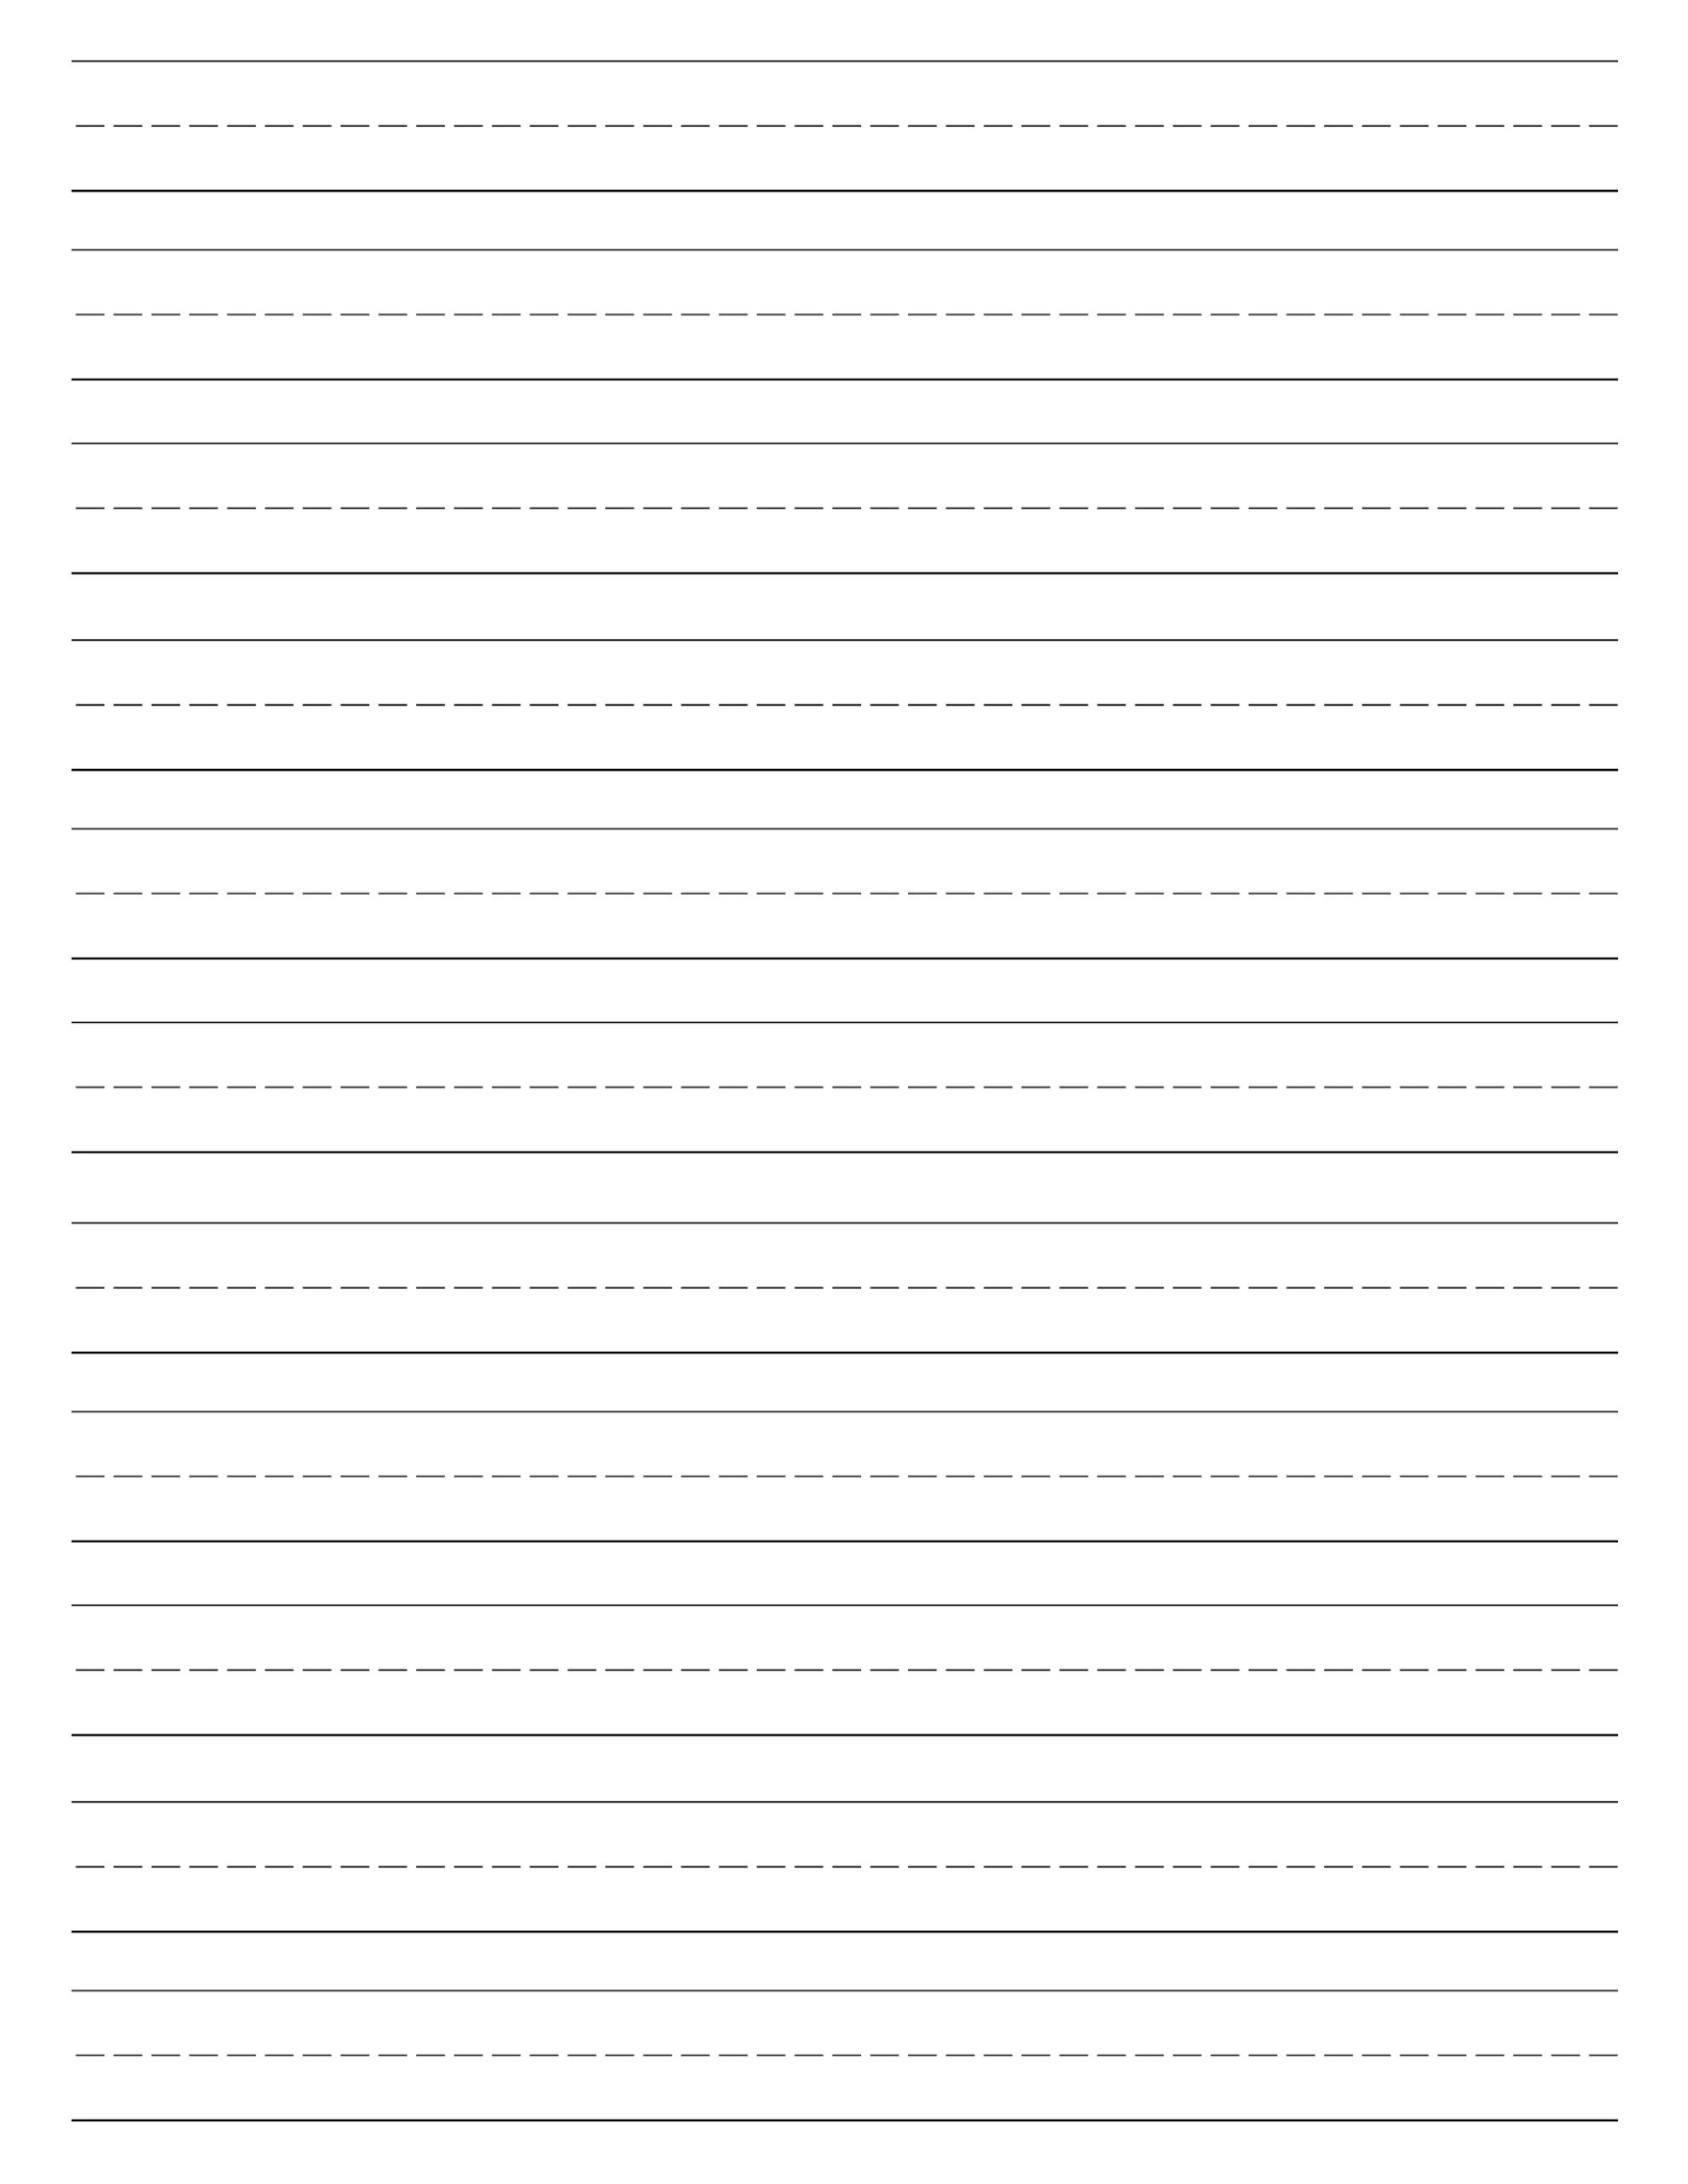 Blank Handwriting Worksheet Print